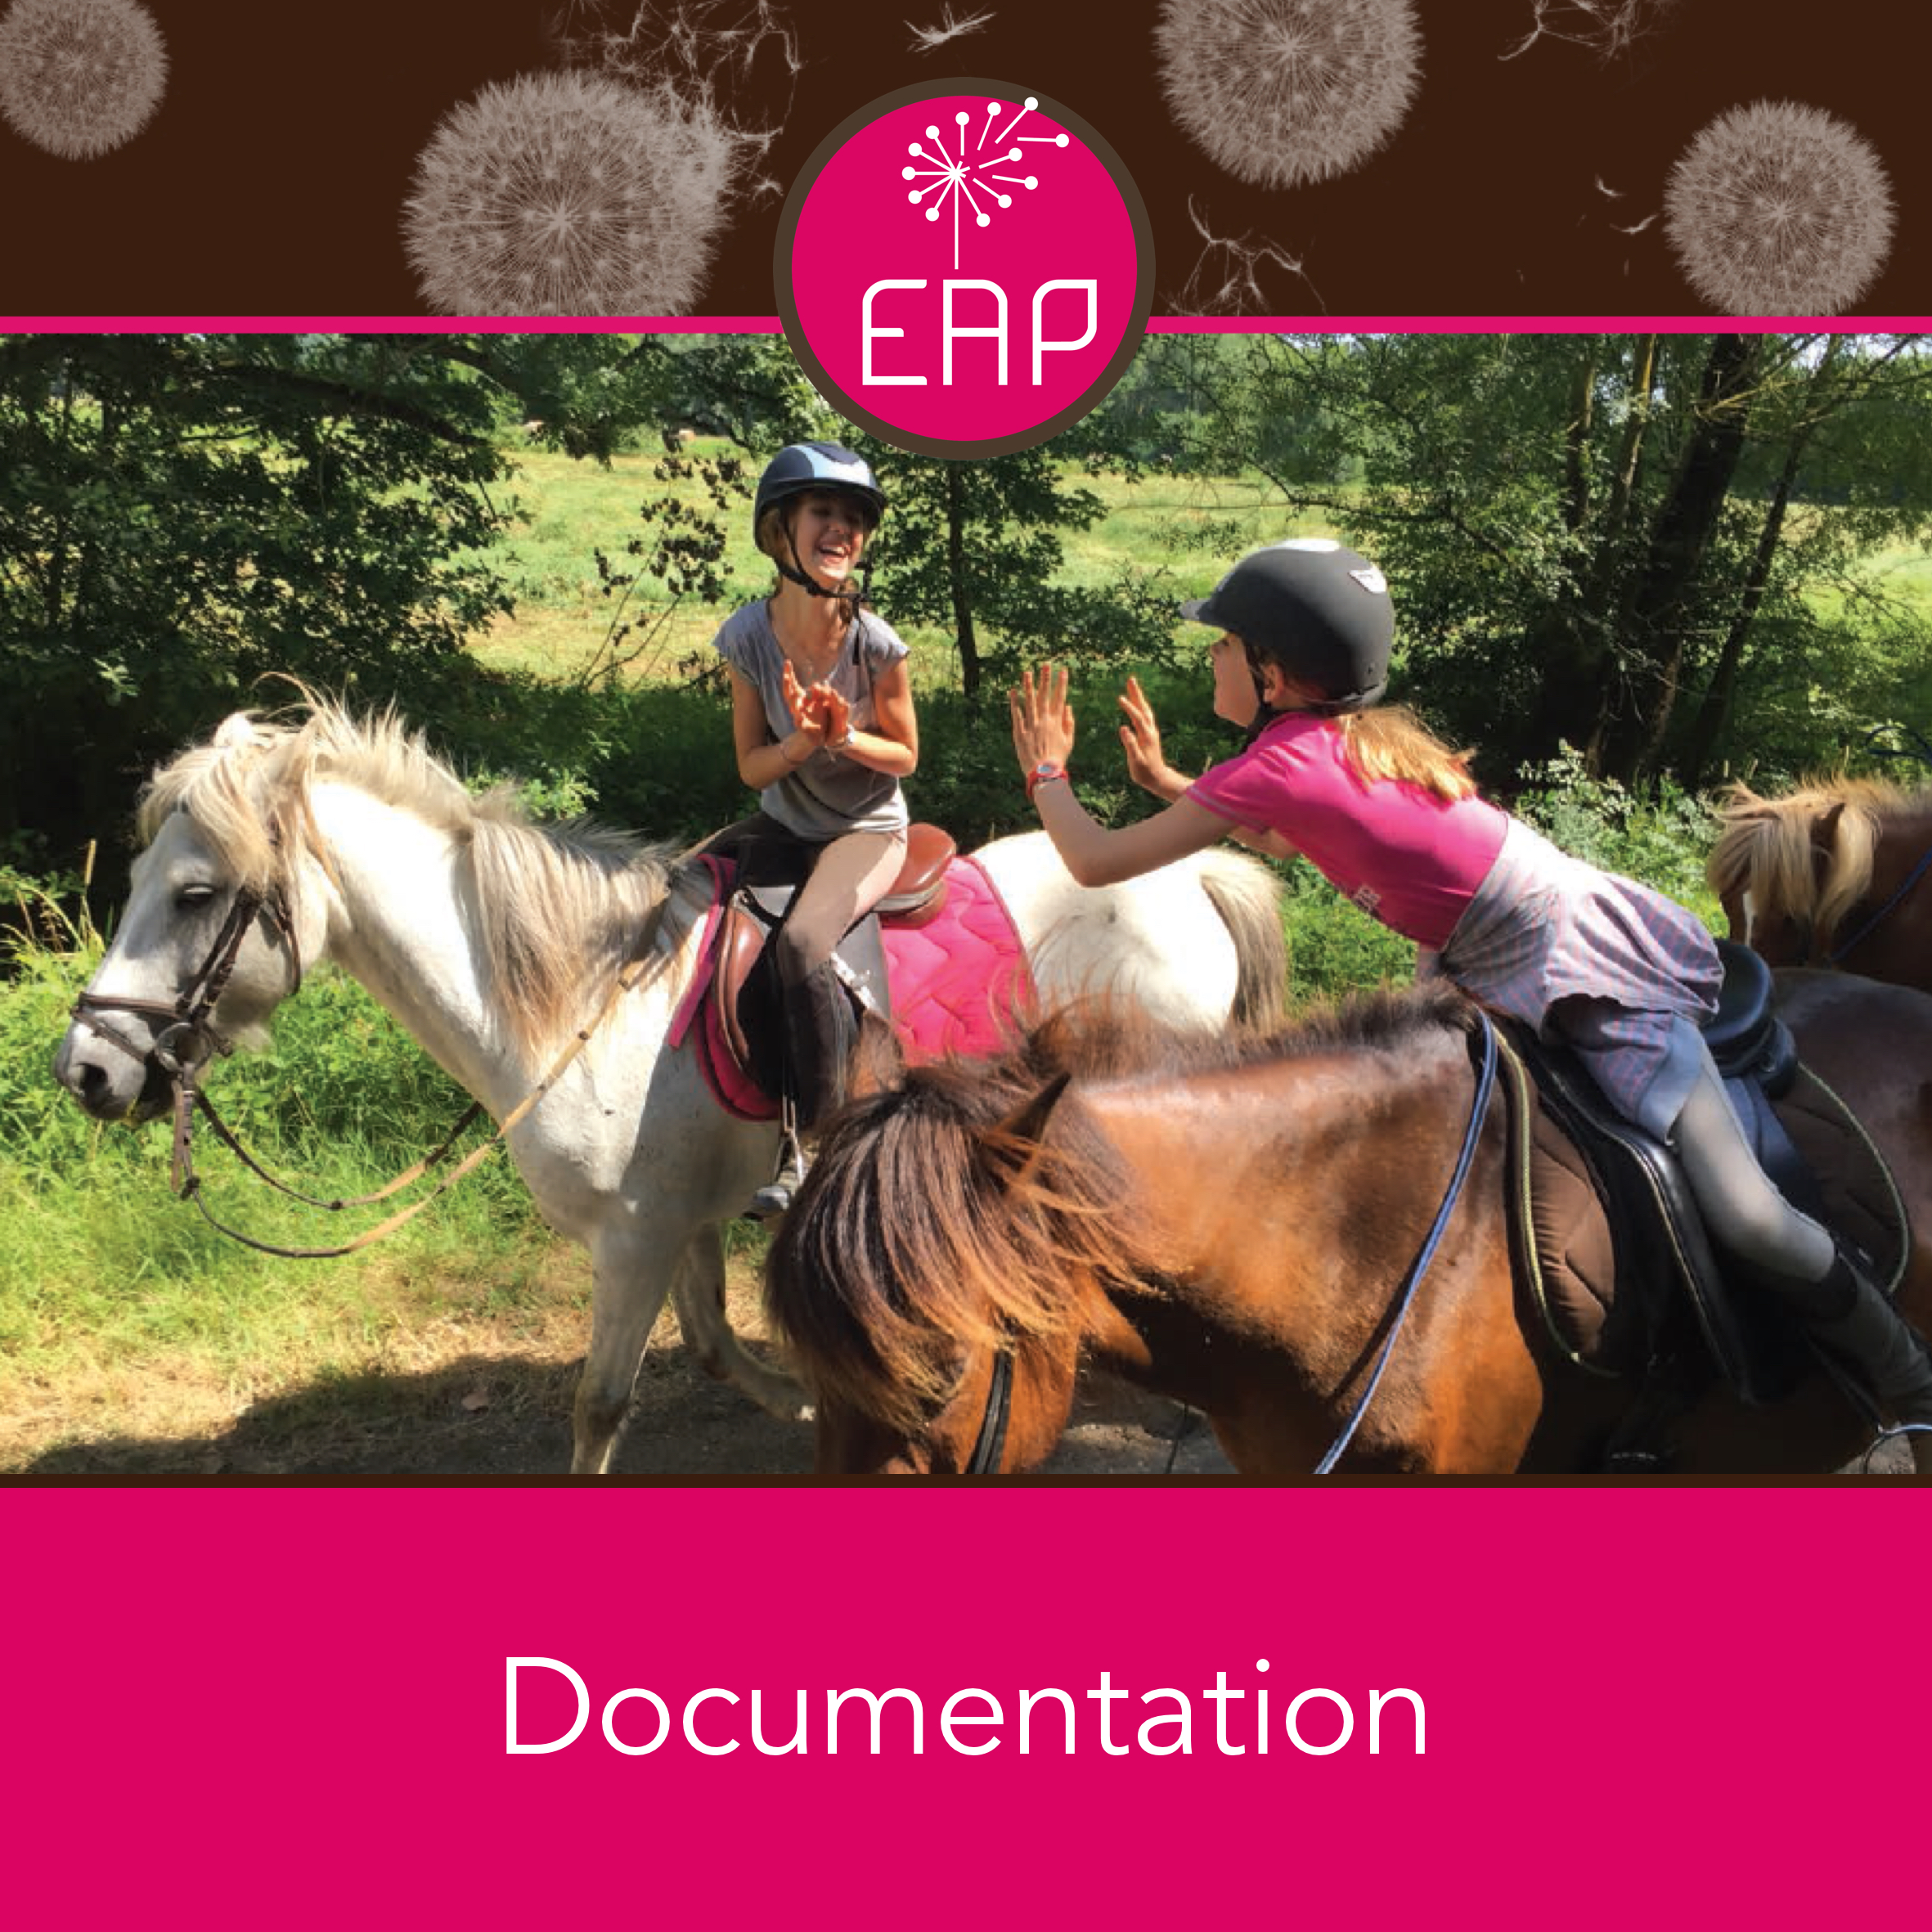 documentation-eap